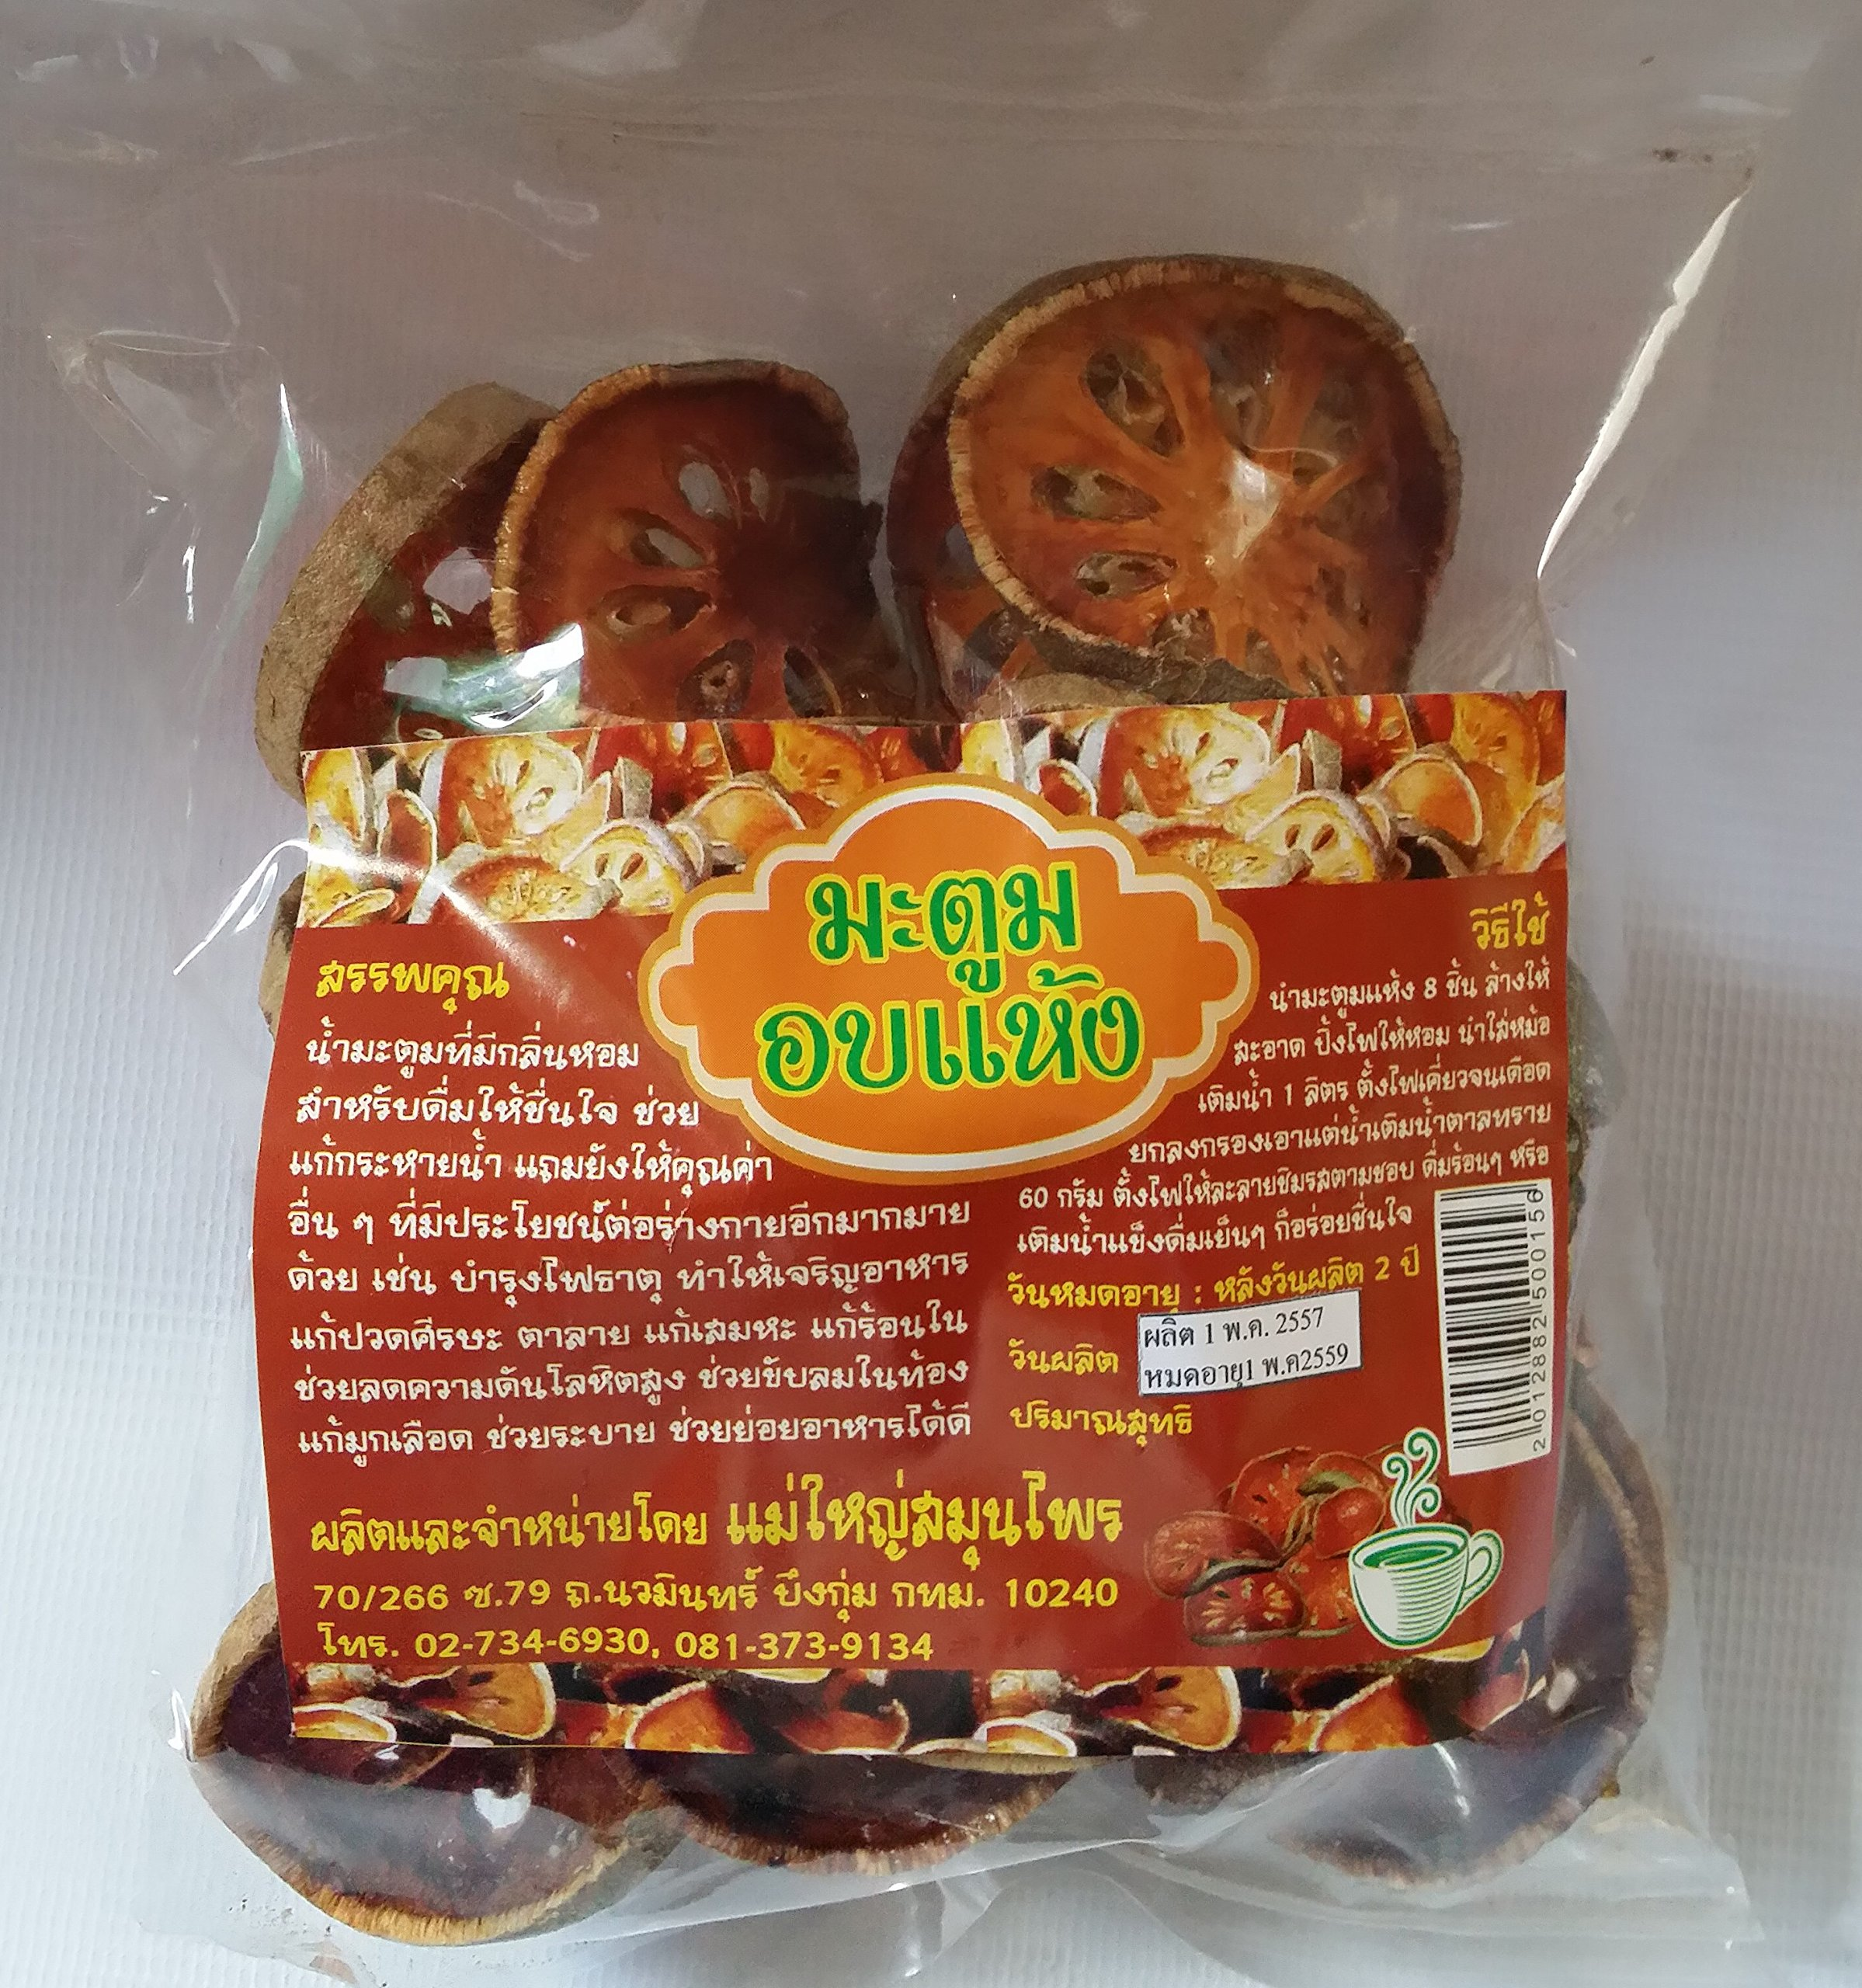 Organic Dried Bael Fruit 100% Natural for Healthy Net Wt 100 G X 3 Packs by Mea Yai Haerb (Image #1)